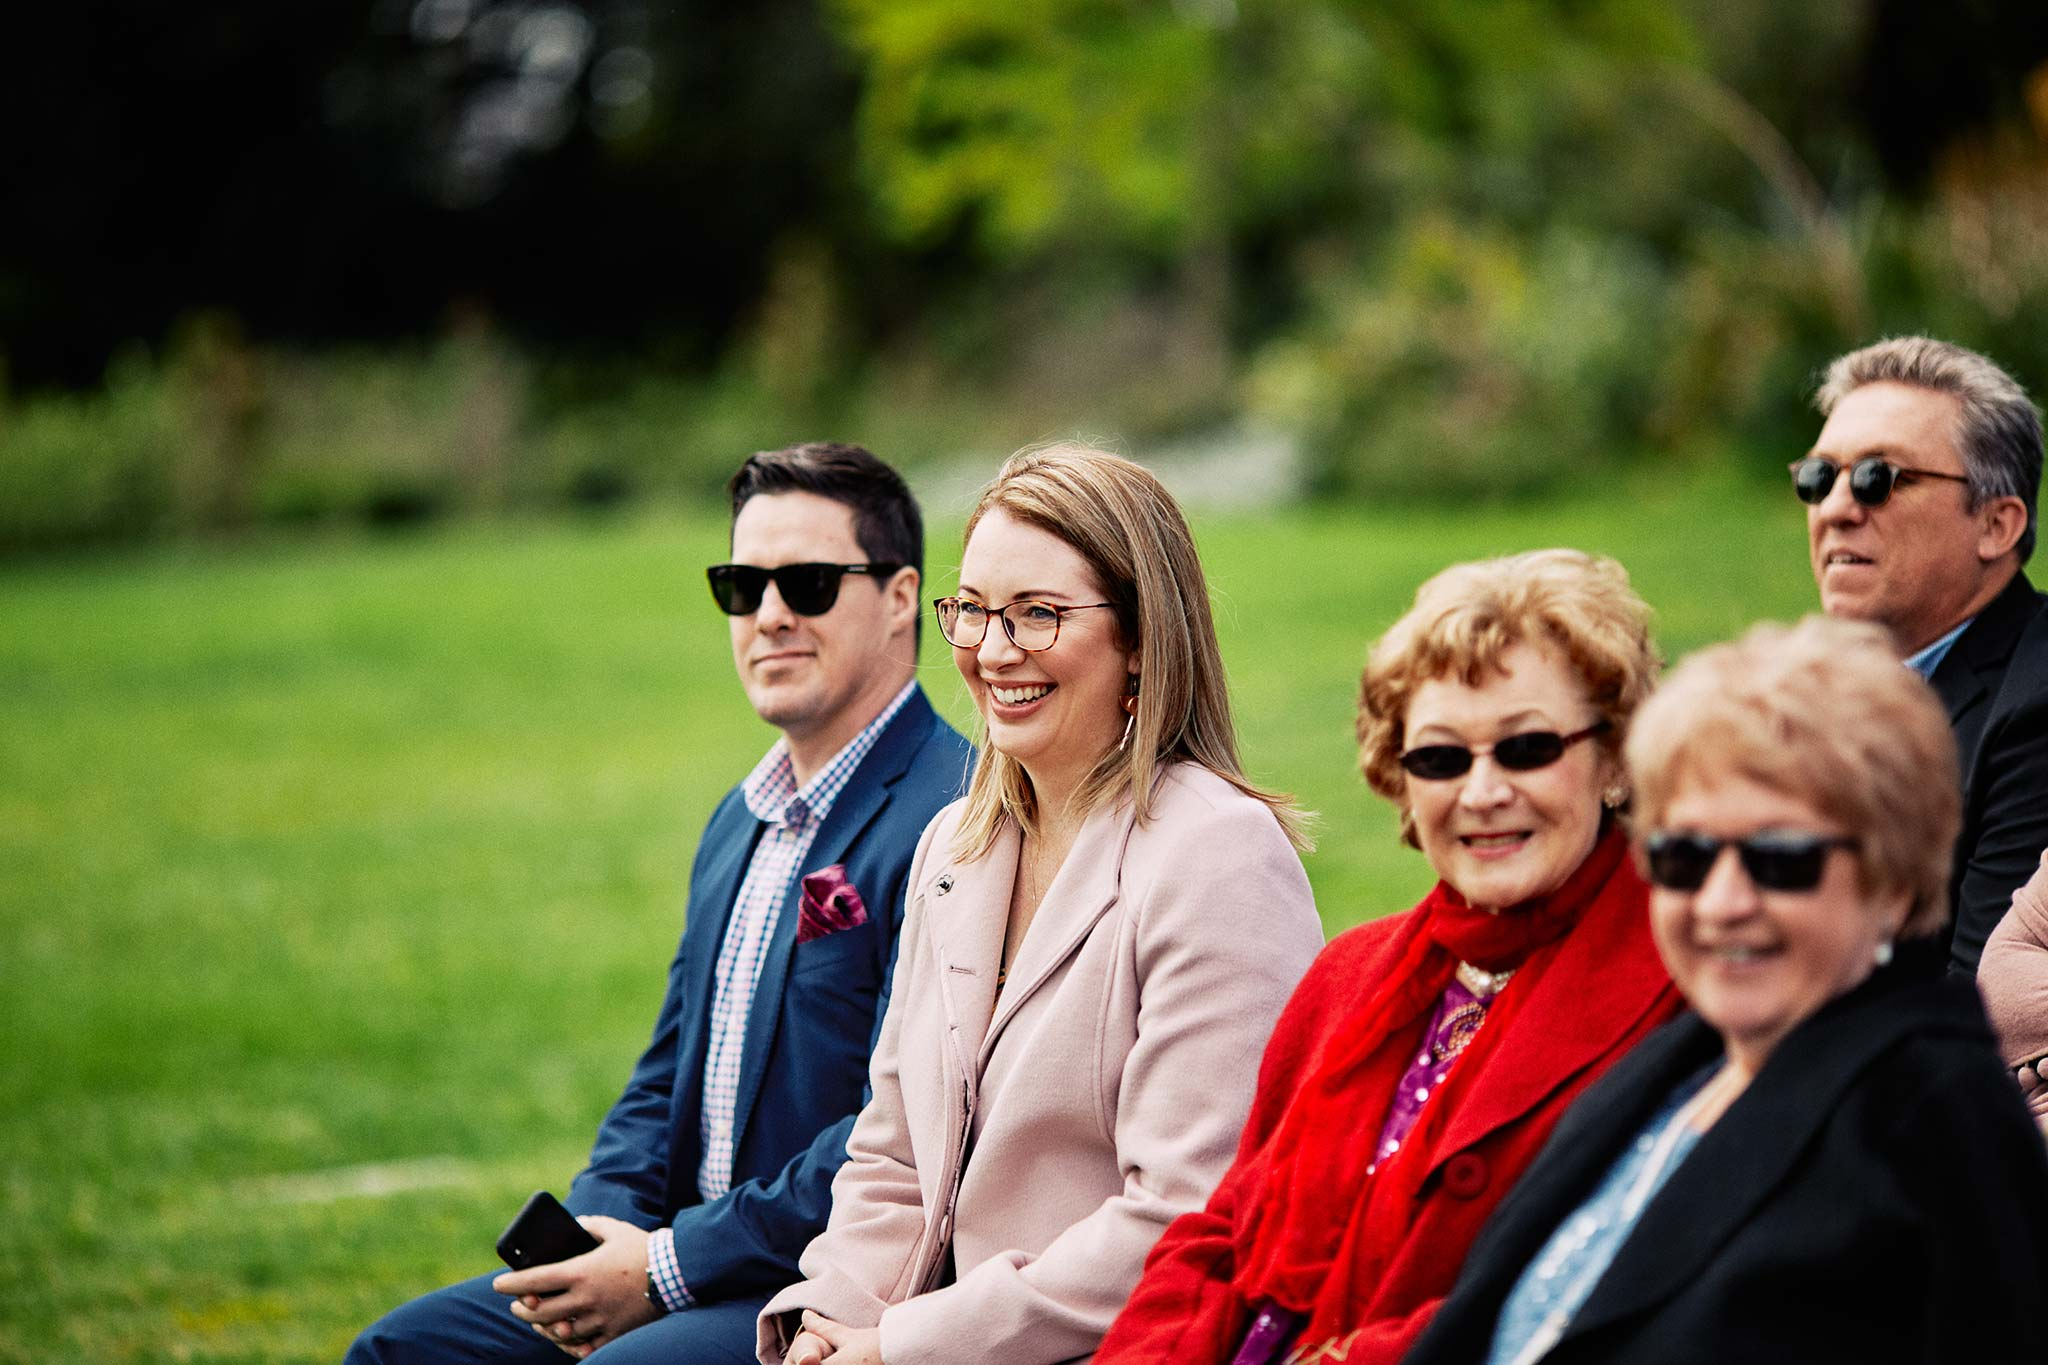 Melbourne Royal Botanical Garden Wedding Ceremony guests reaction